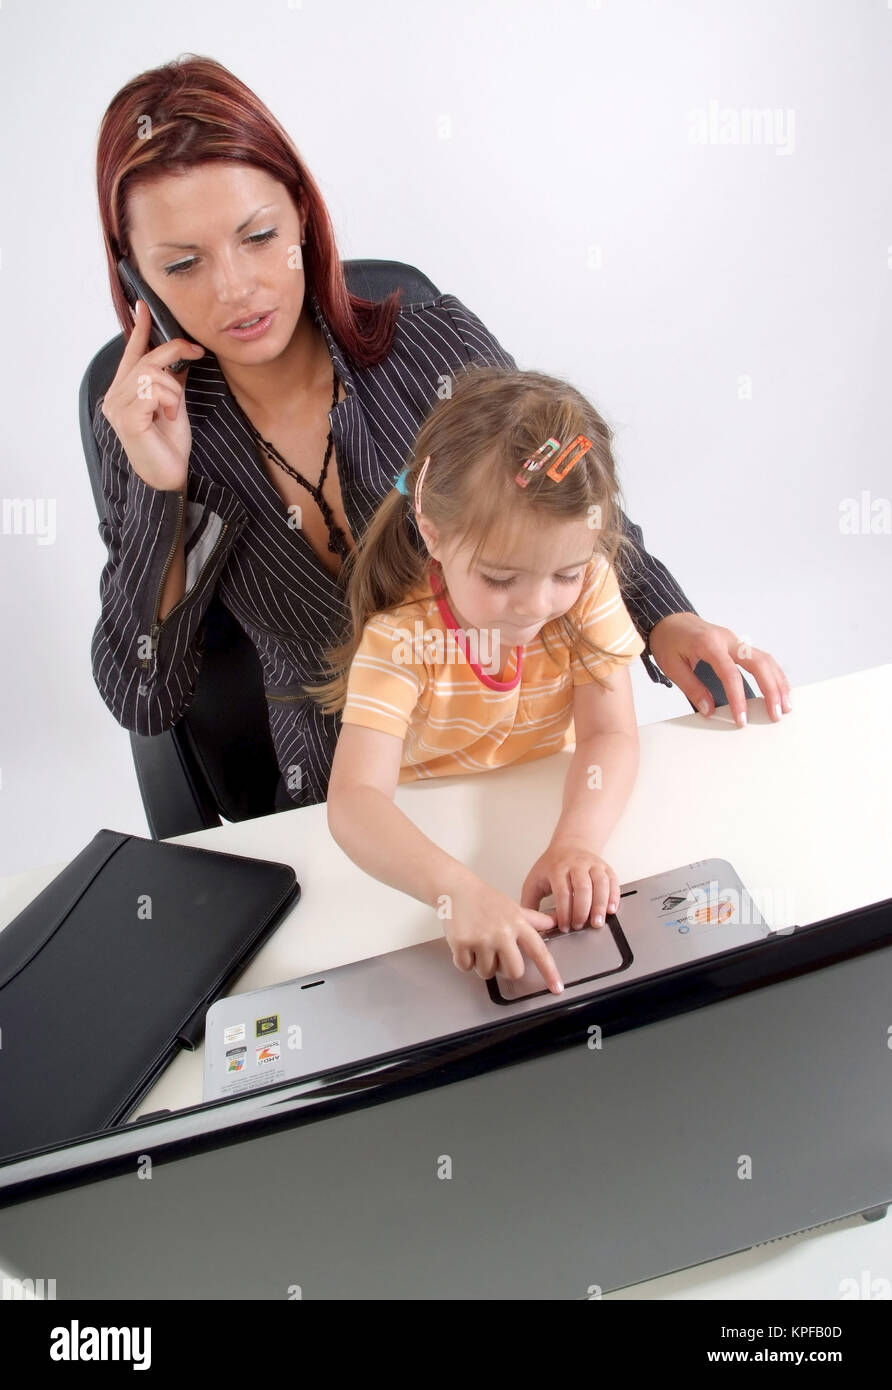 Geschaeftsfrau mit Kind arbeitet am Laptop - business woman with child using laptop - Stock Image